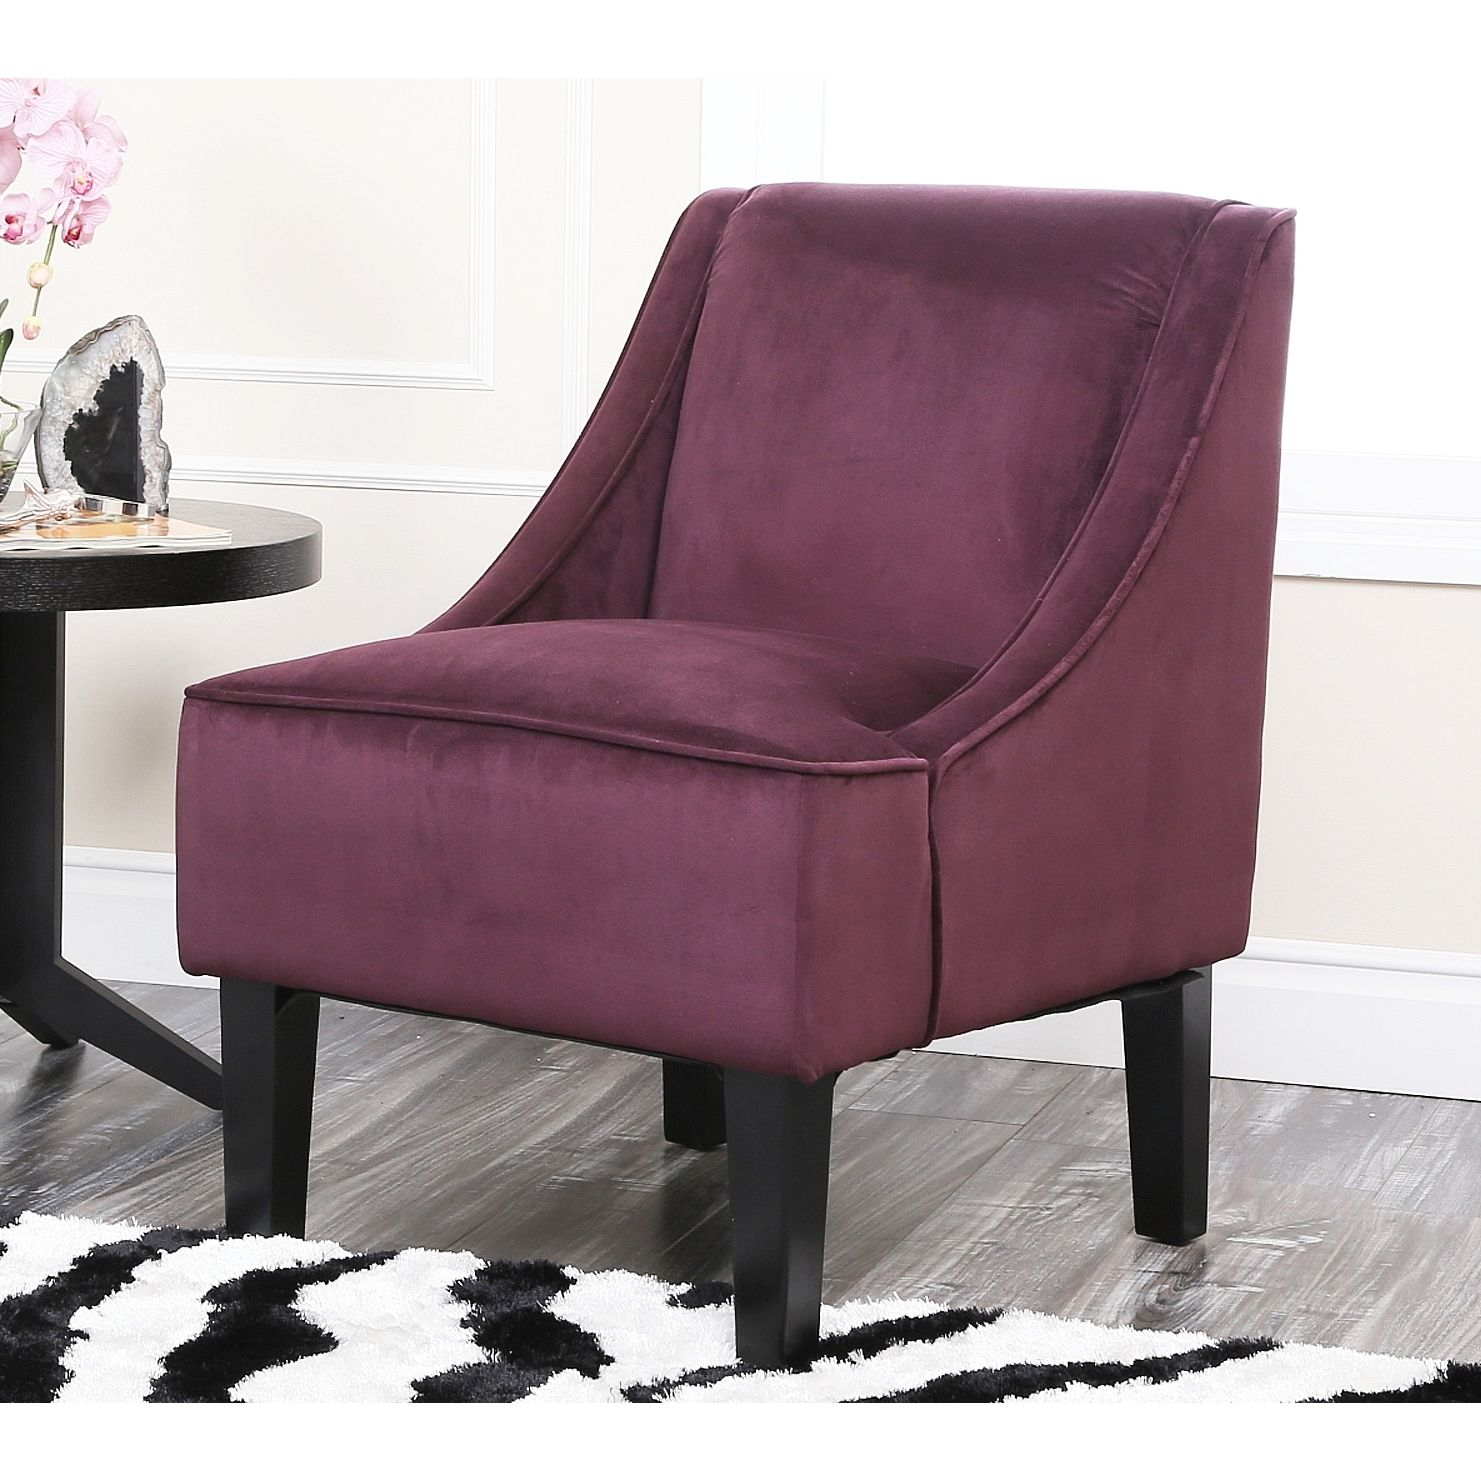 ABBYSON LIVING Cameron Purple Suede Swoop Chair by Abbyson